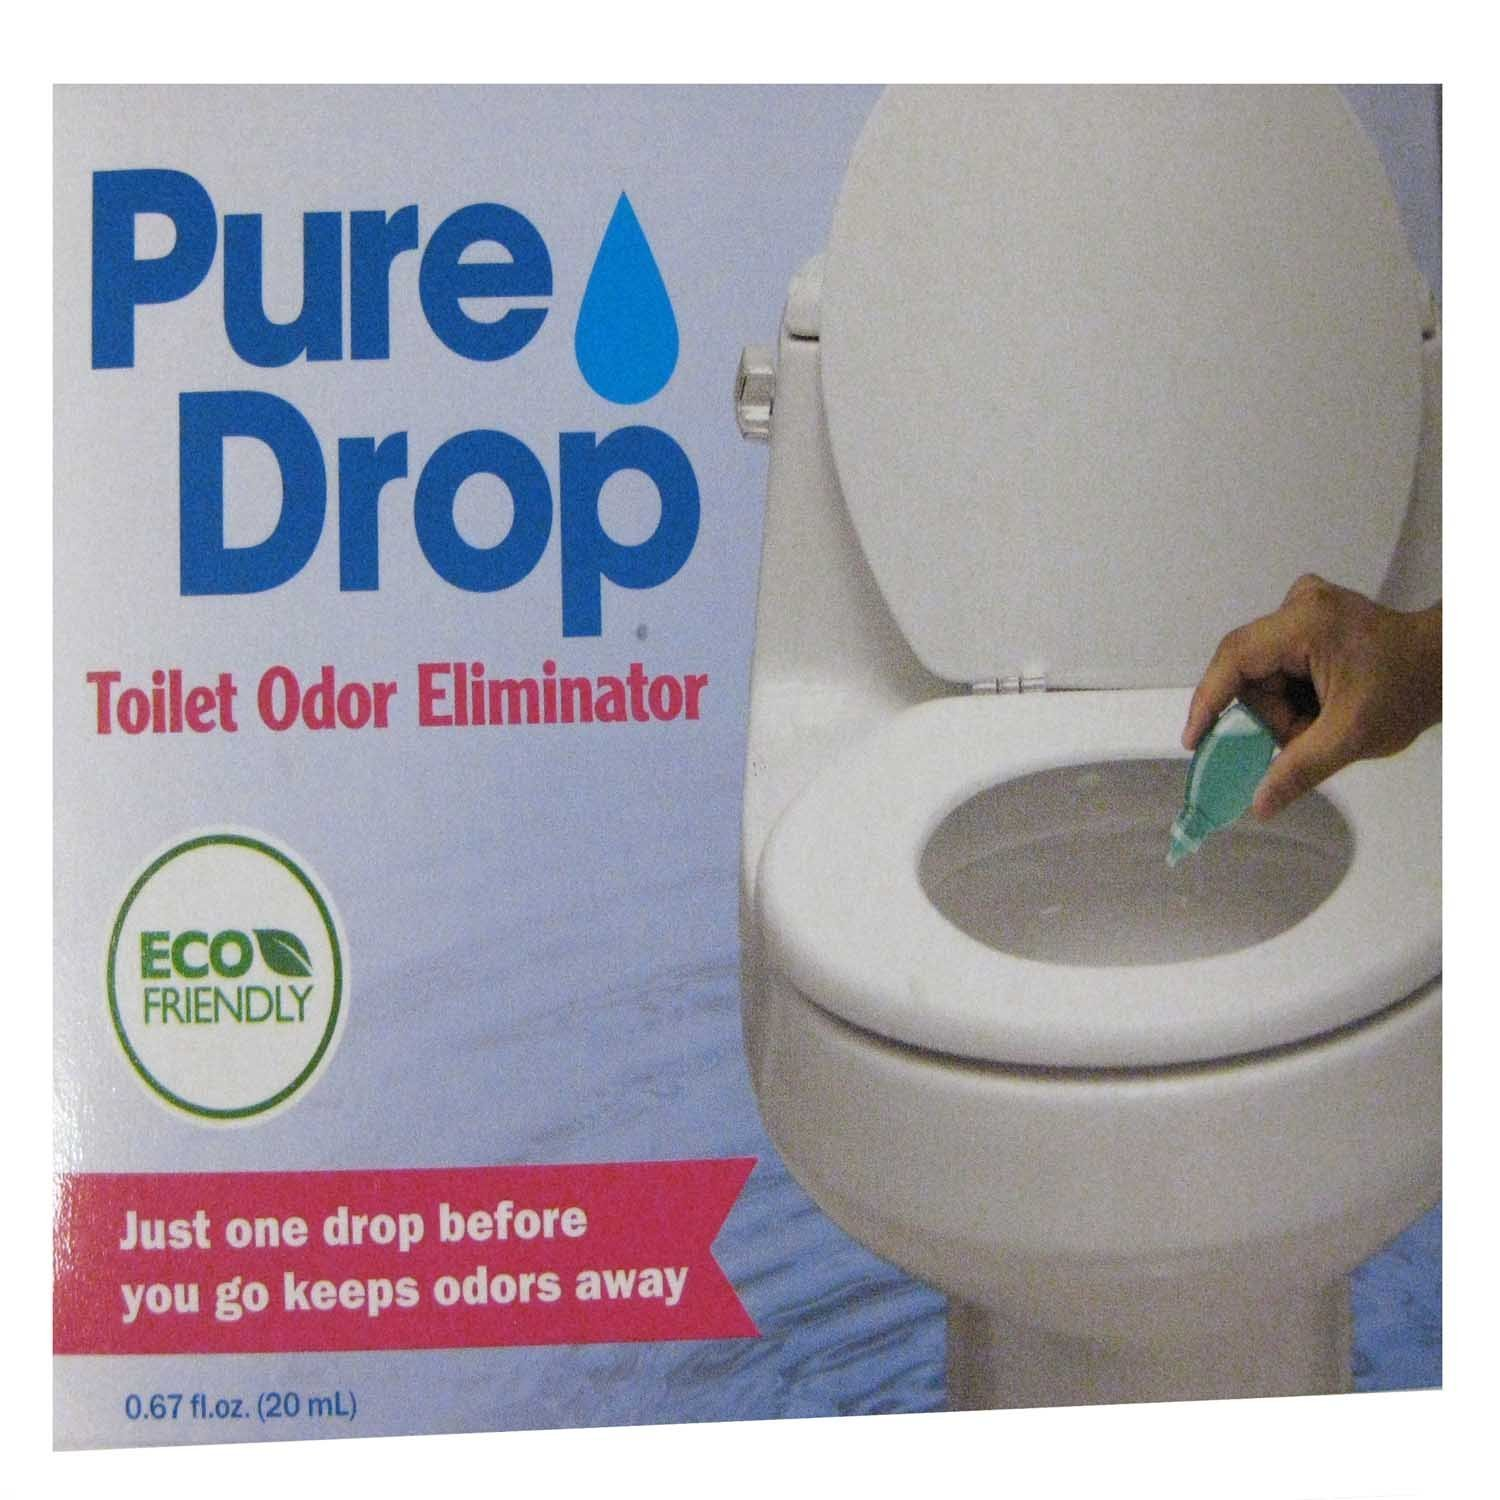 Pure Drop Toilet Odor Eliminator Just One Drop Before You Go Keeps Odors Away Other